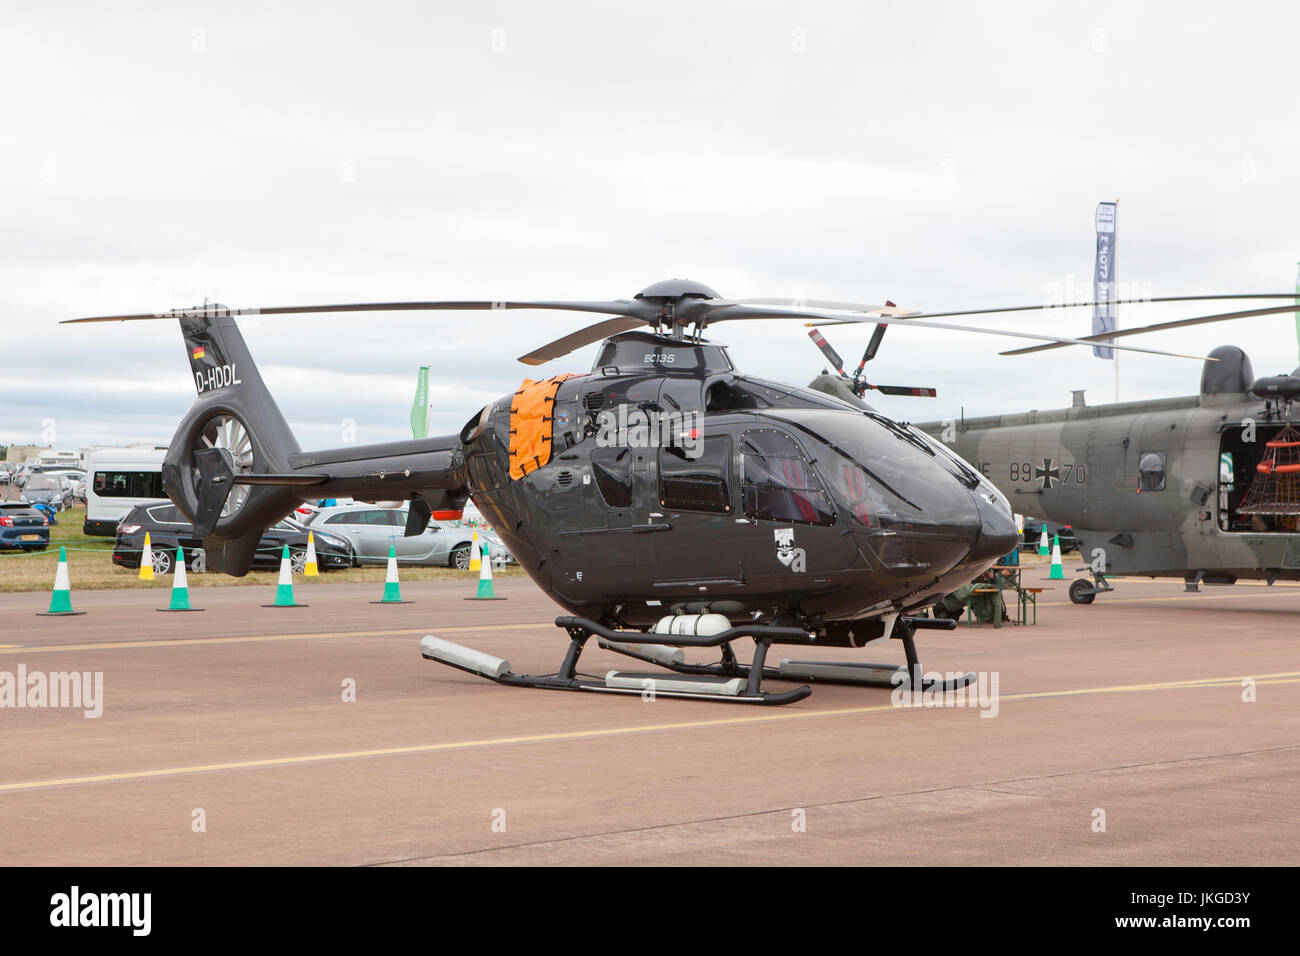 Marineflieger German Navy DL Helicopter Airbus Eurocopter at the Royal International Air Tattoo RIAT 2017 - Stock Image